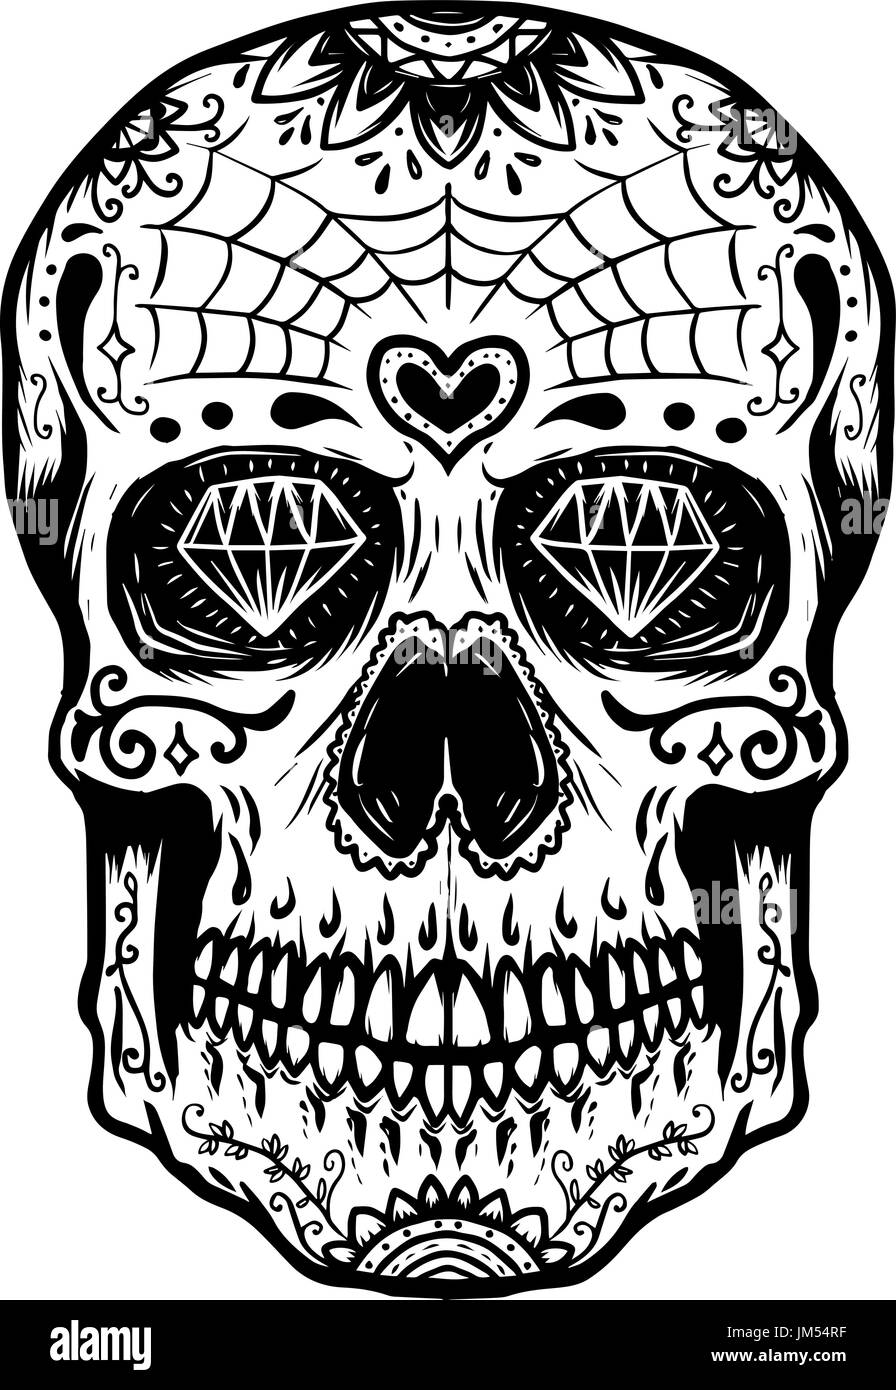 Hand Drawn Sugar Skull Isolated On White Background Day Of The Dead